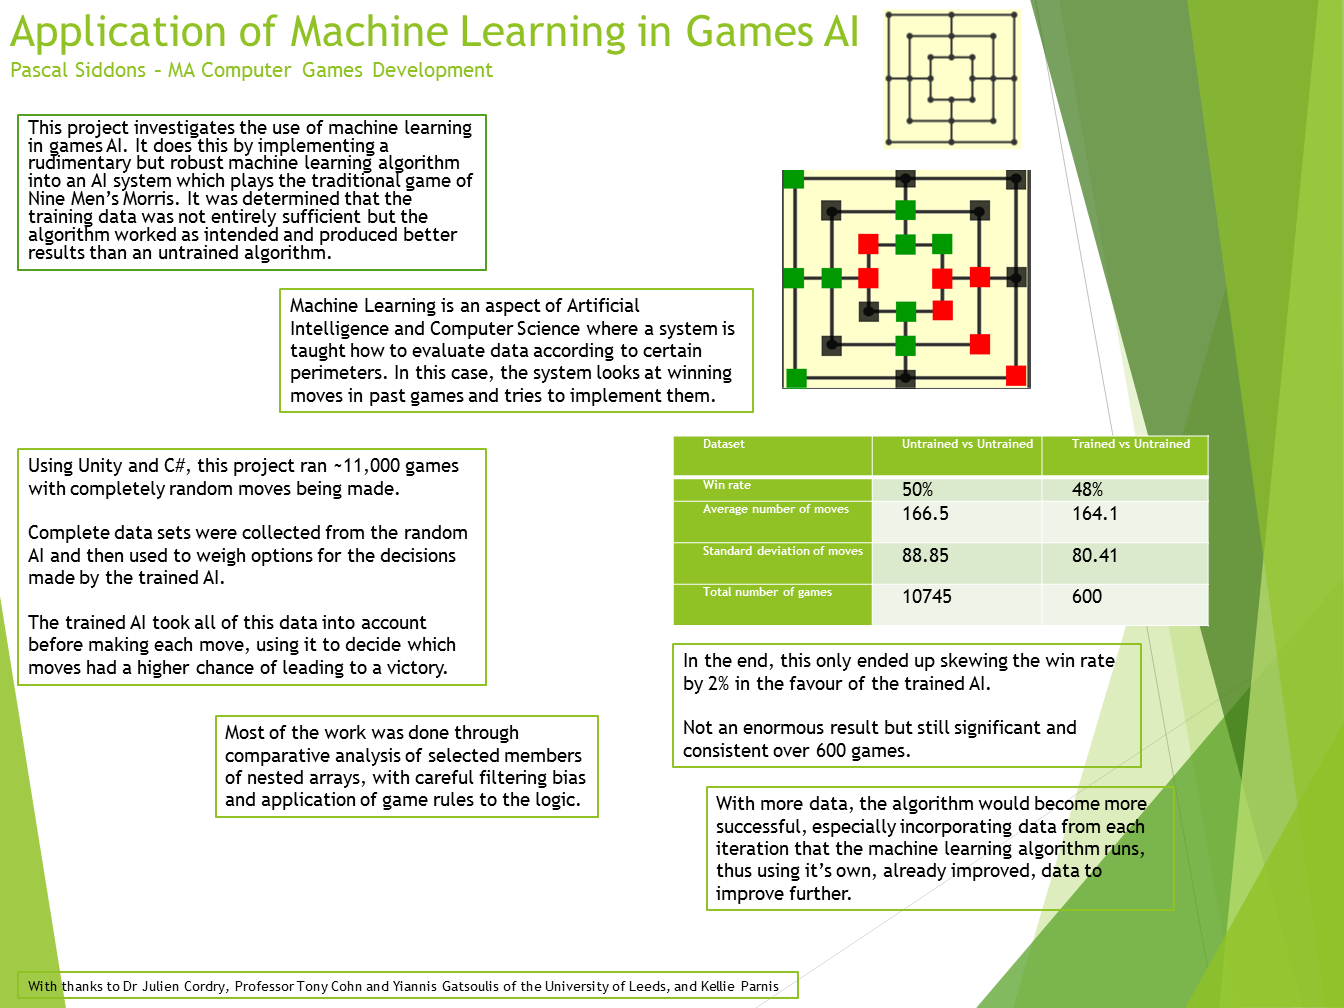 Application of Machine Learning in Games AI